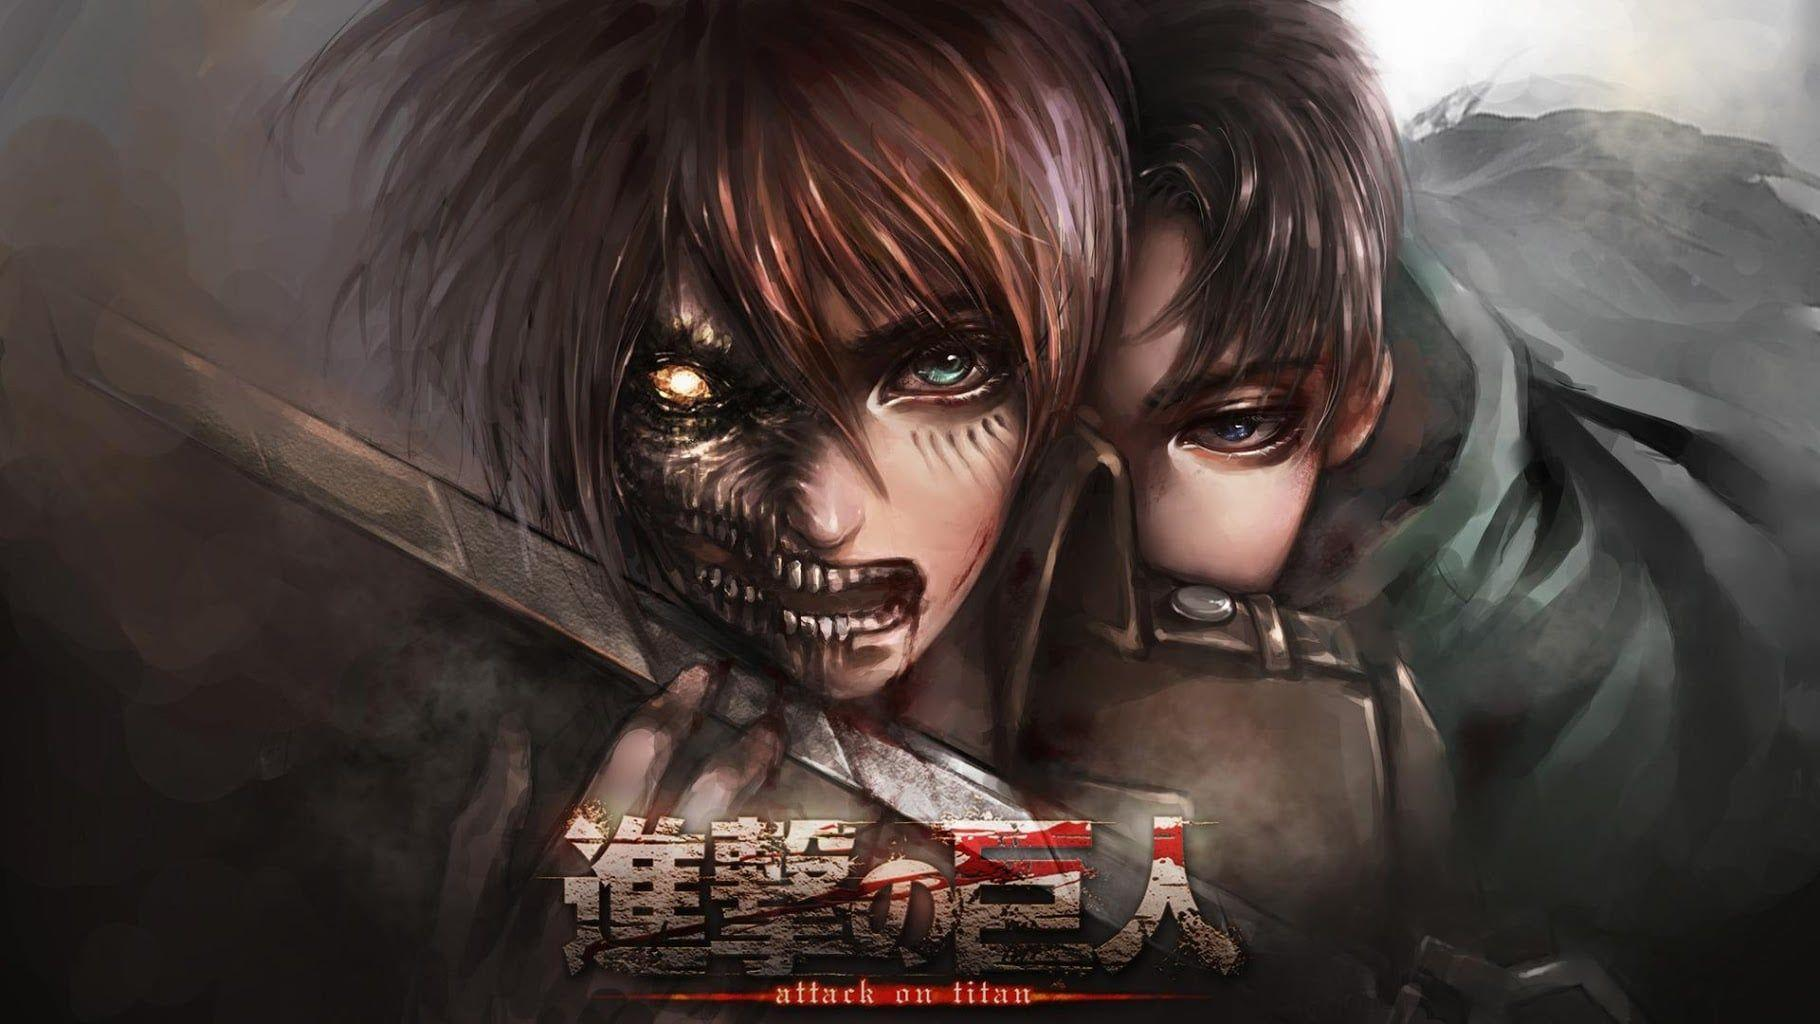 Make it easy with our tips on application. Attack On Titan Wallpapers - Wallpaper Cave